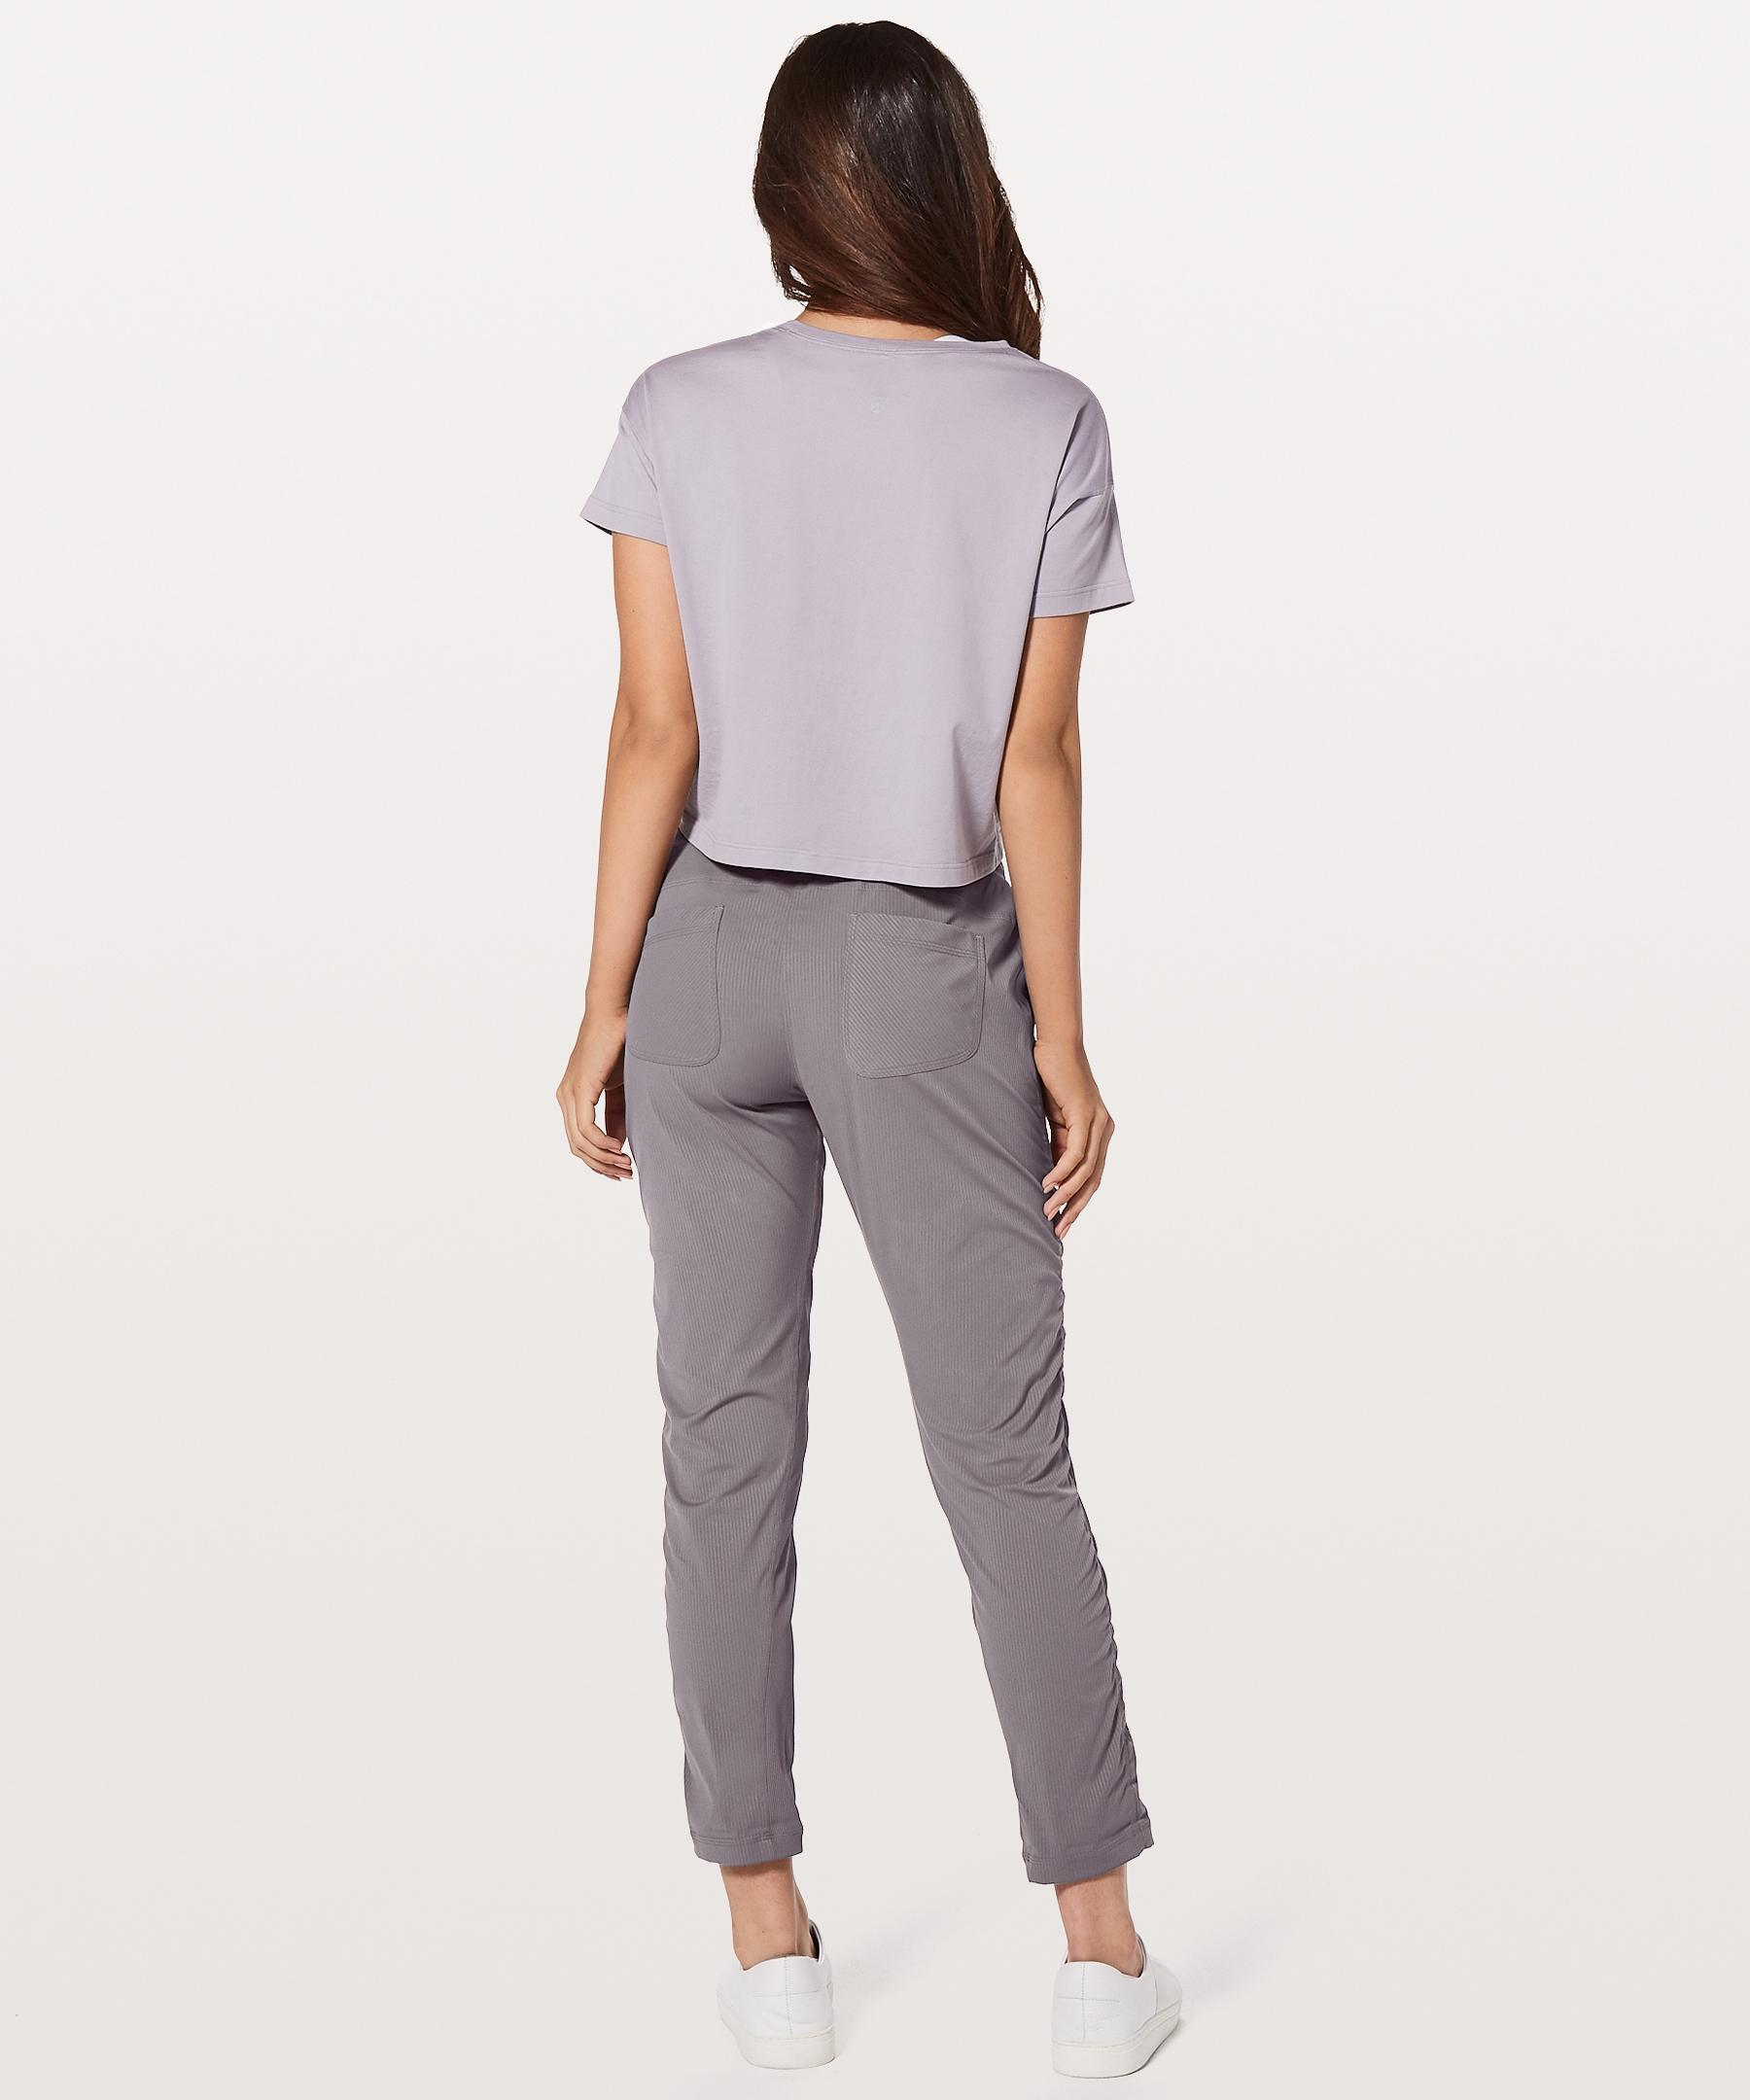 b57f34e03e6 Lyst - lululemon athletica Street To Studio Pant Ii  unlined Online ...